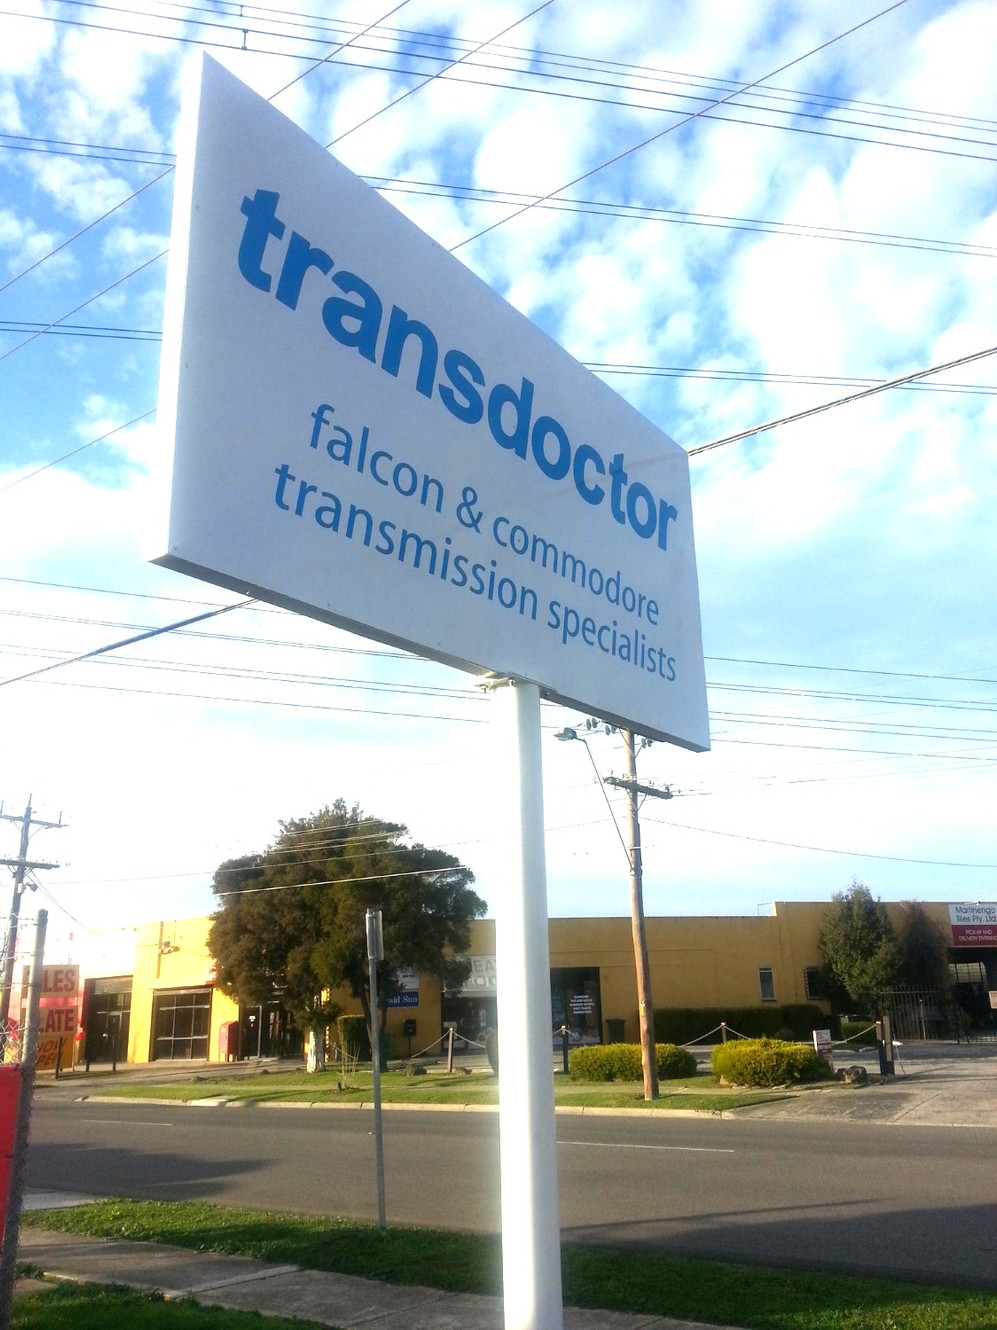 Transdoctor Transmission Prices | Melbourne | Transdoctor